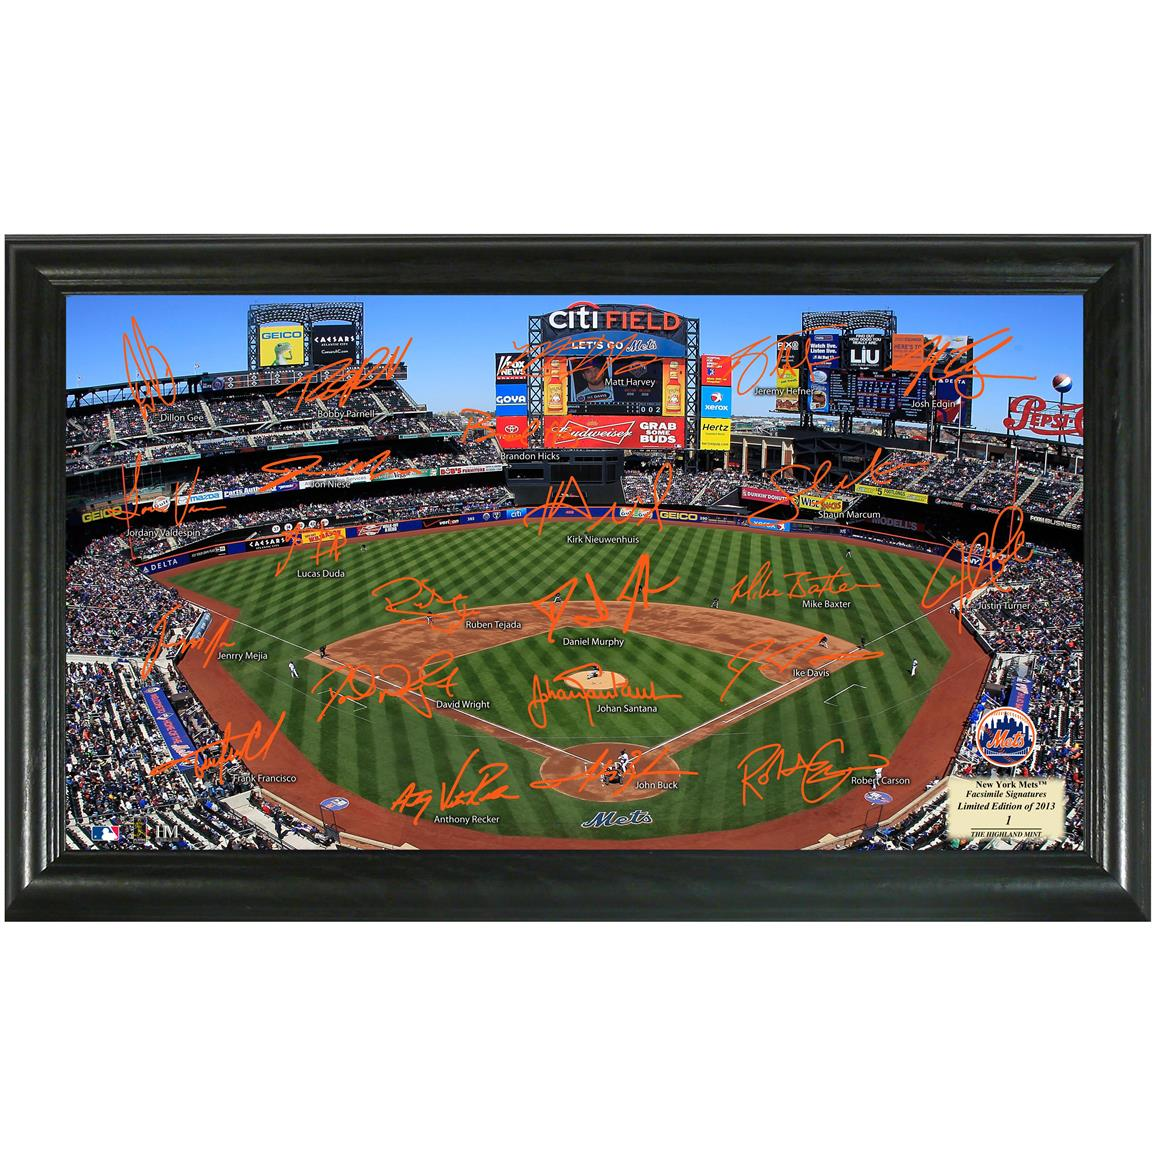 2013 New York Mets Signature Field Display from Highland Mint®